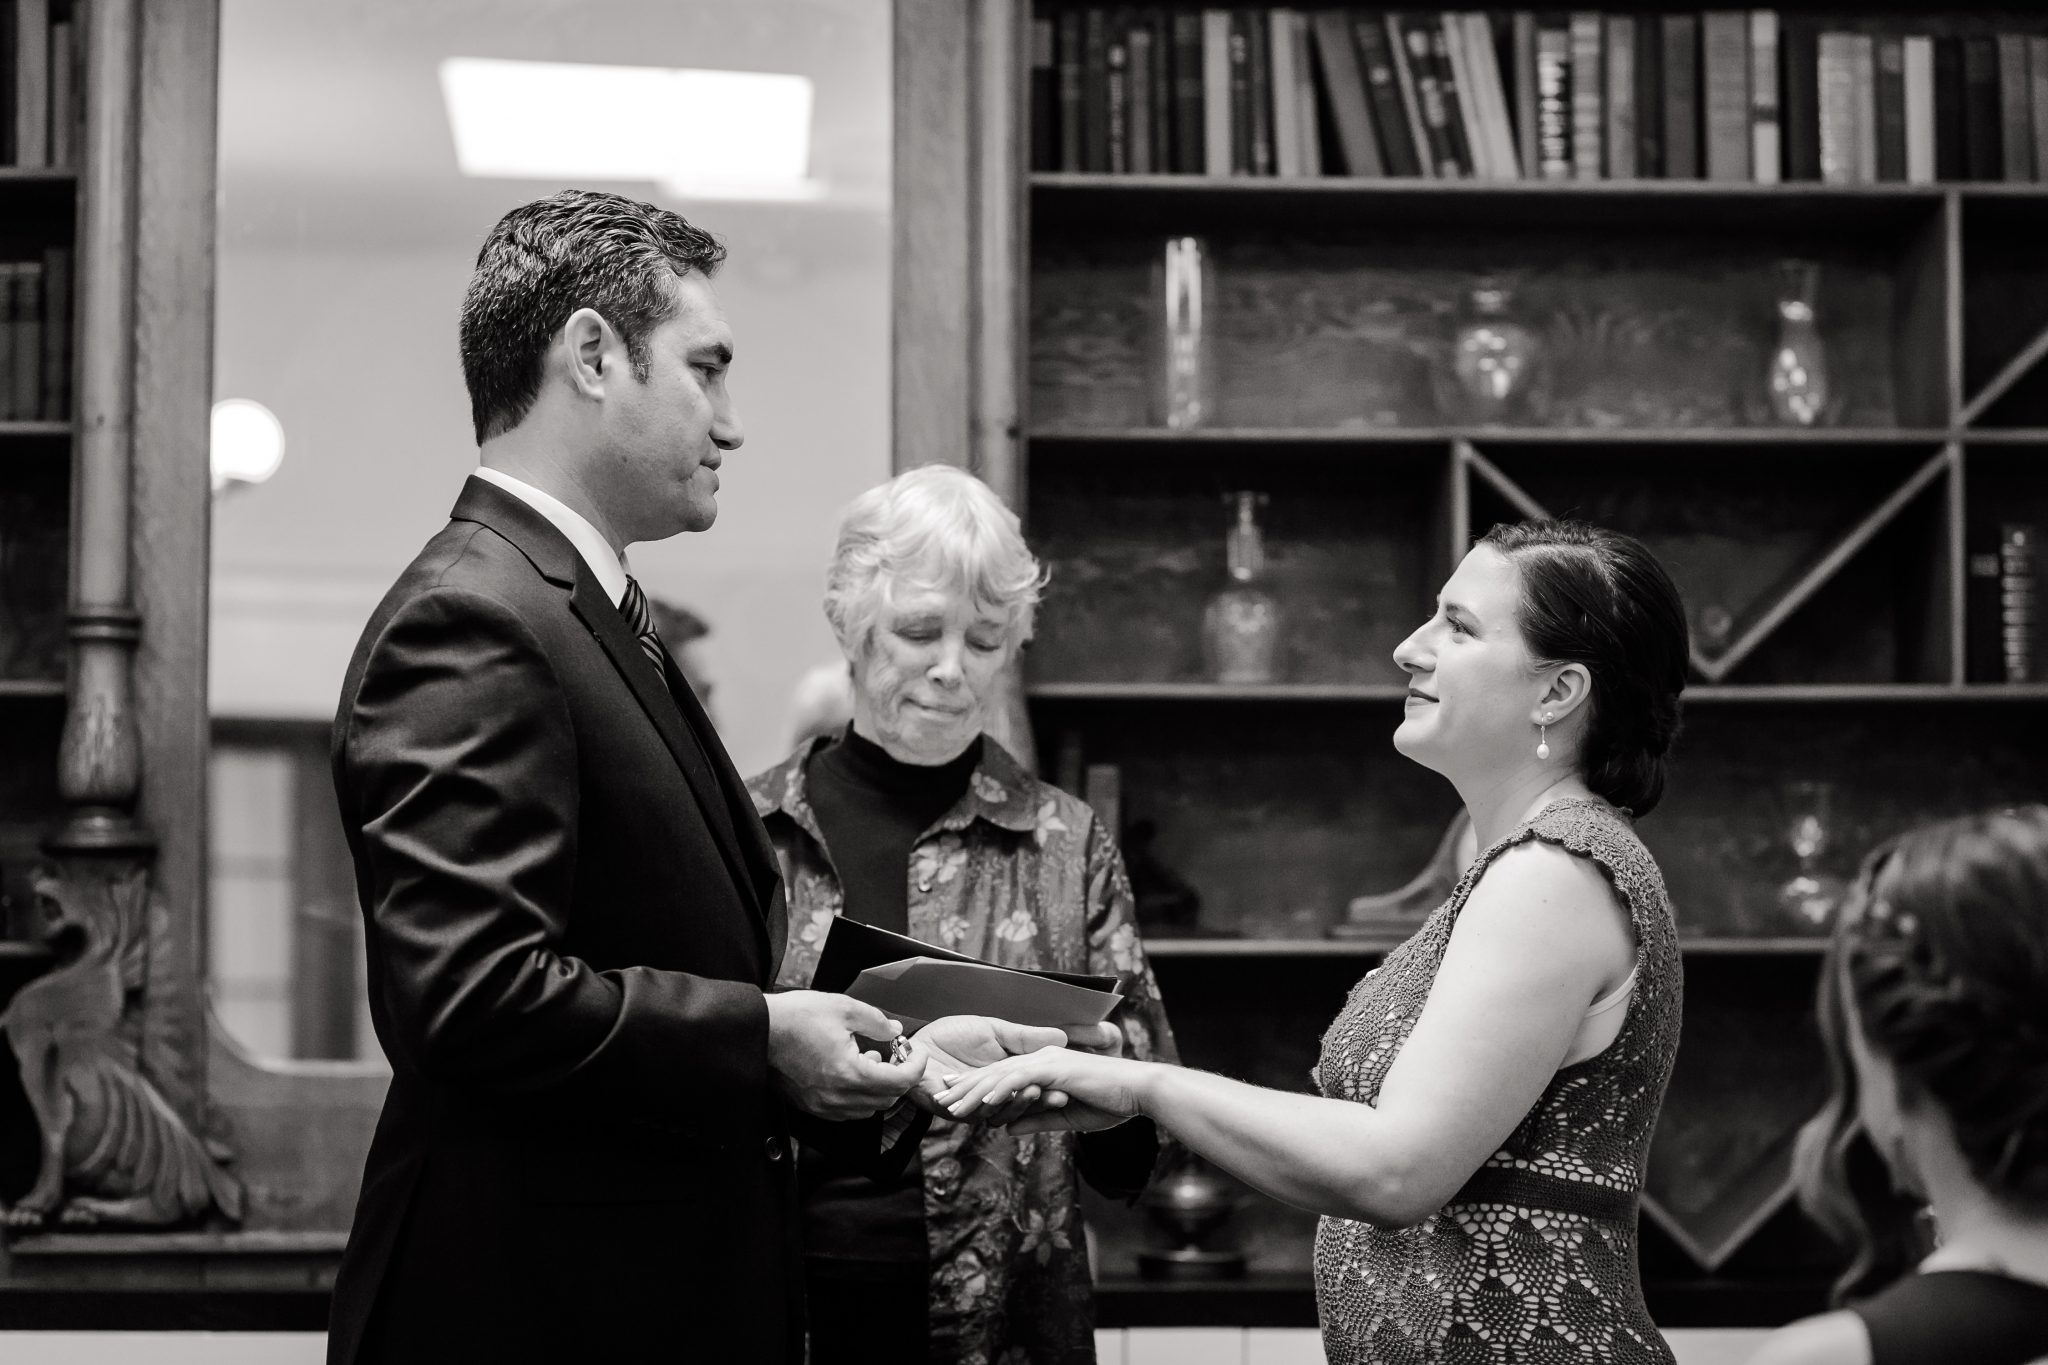 A Black and white image of a bride and groom at the altar.